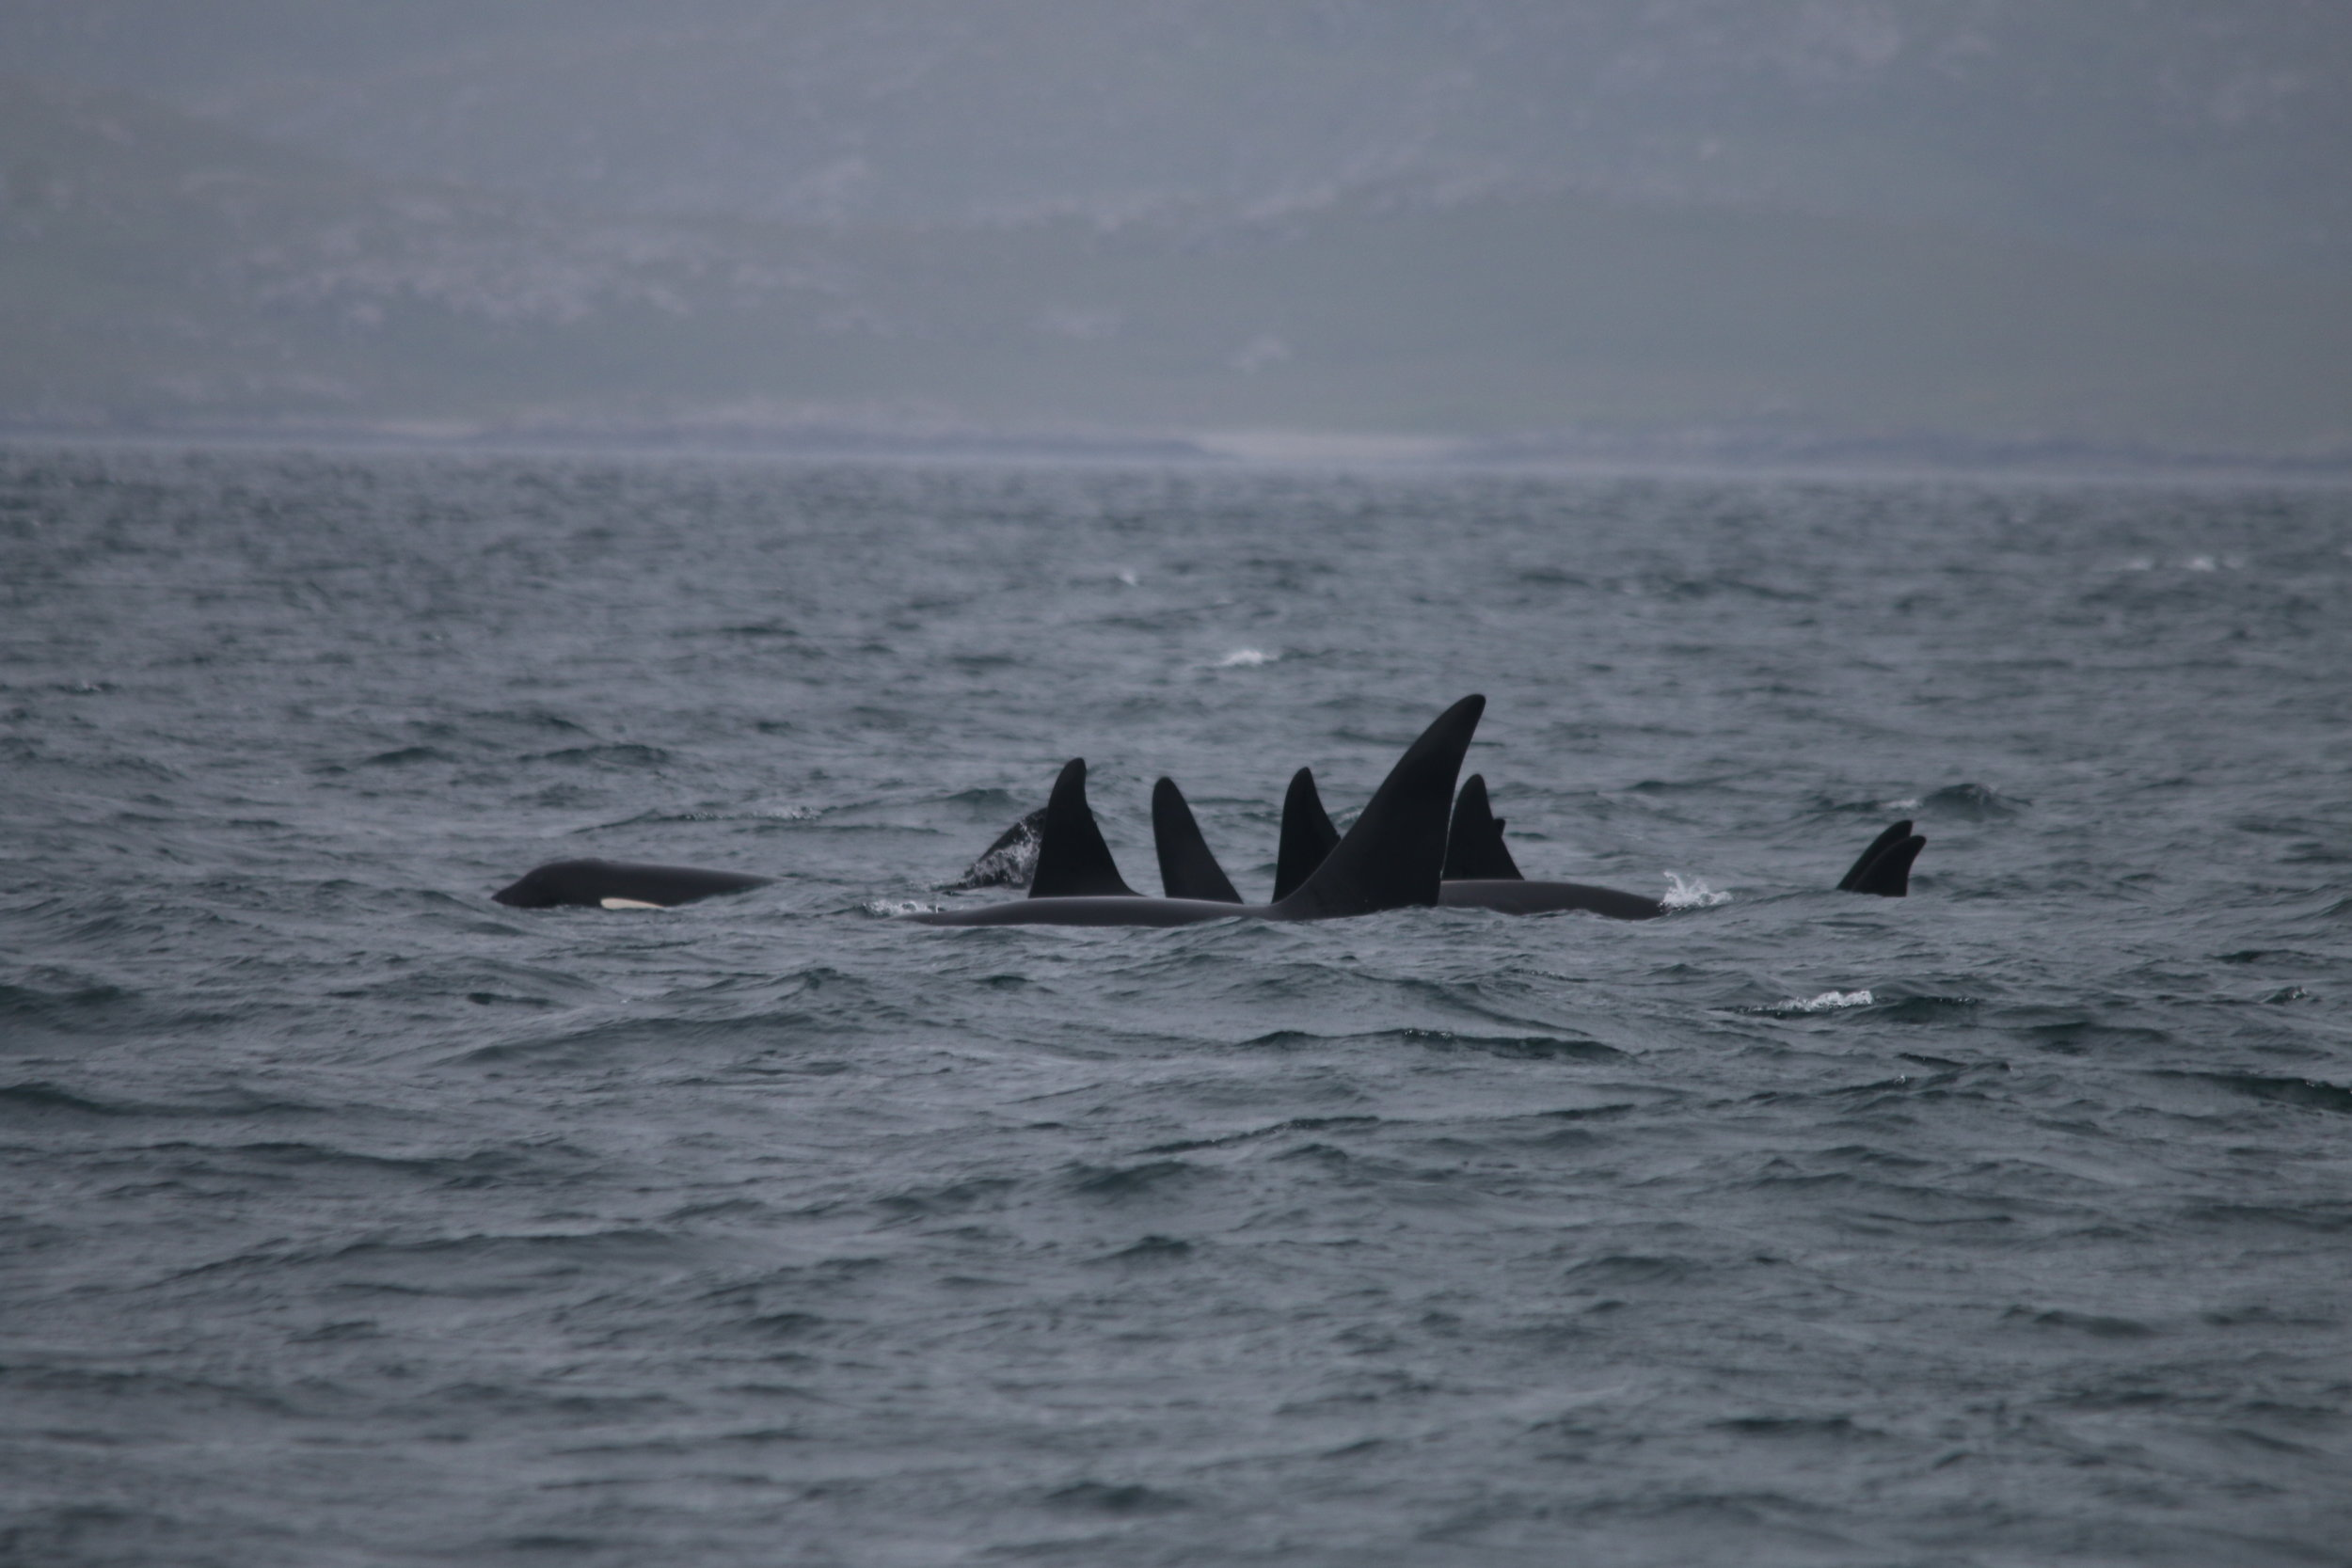 The mystery group of nine killer whales spotted on Silurian near Vatersay, June 2018